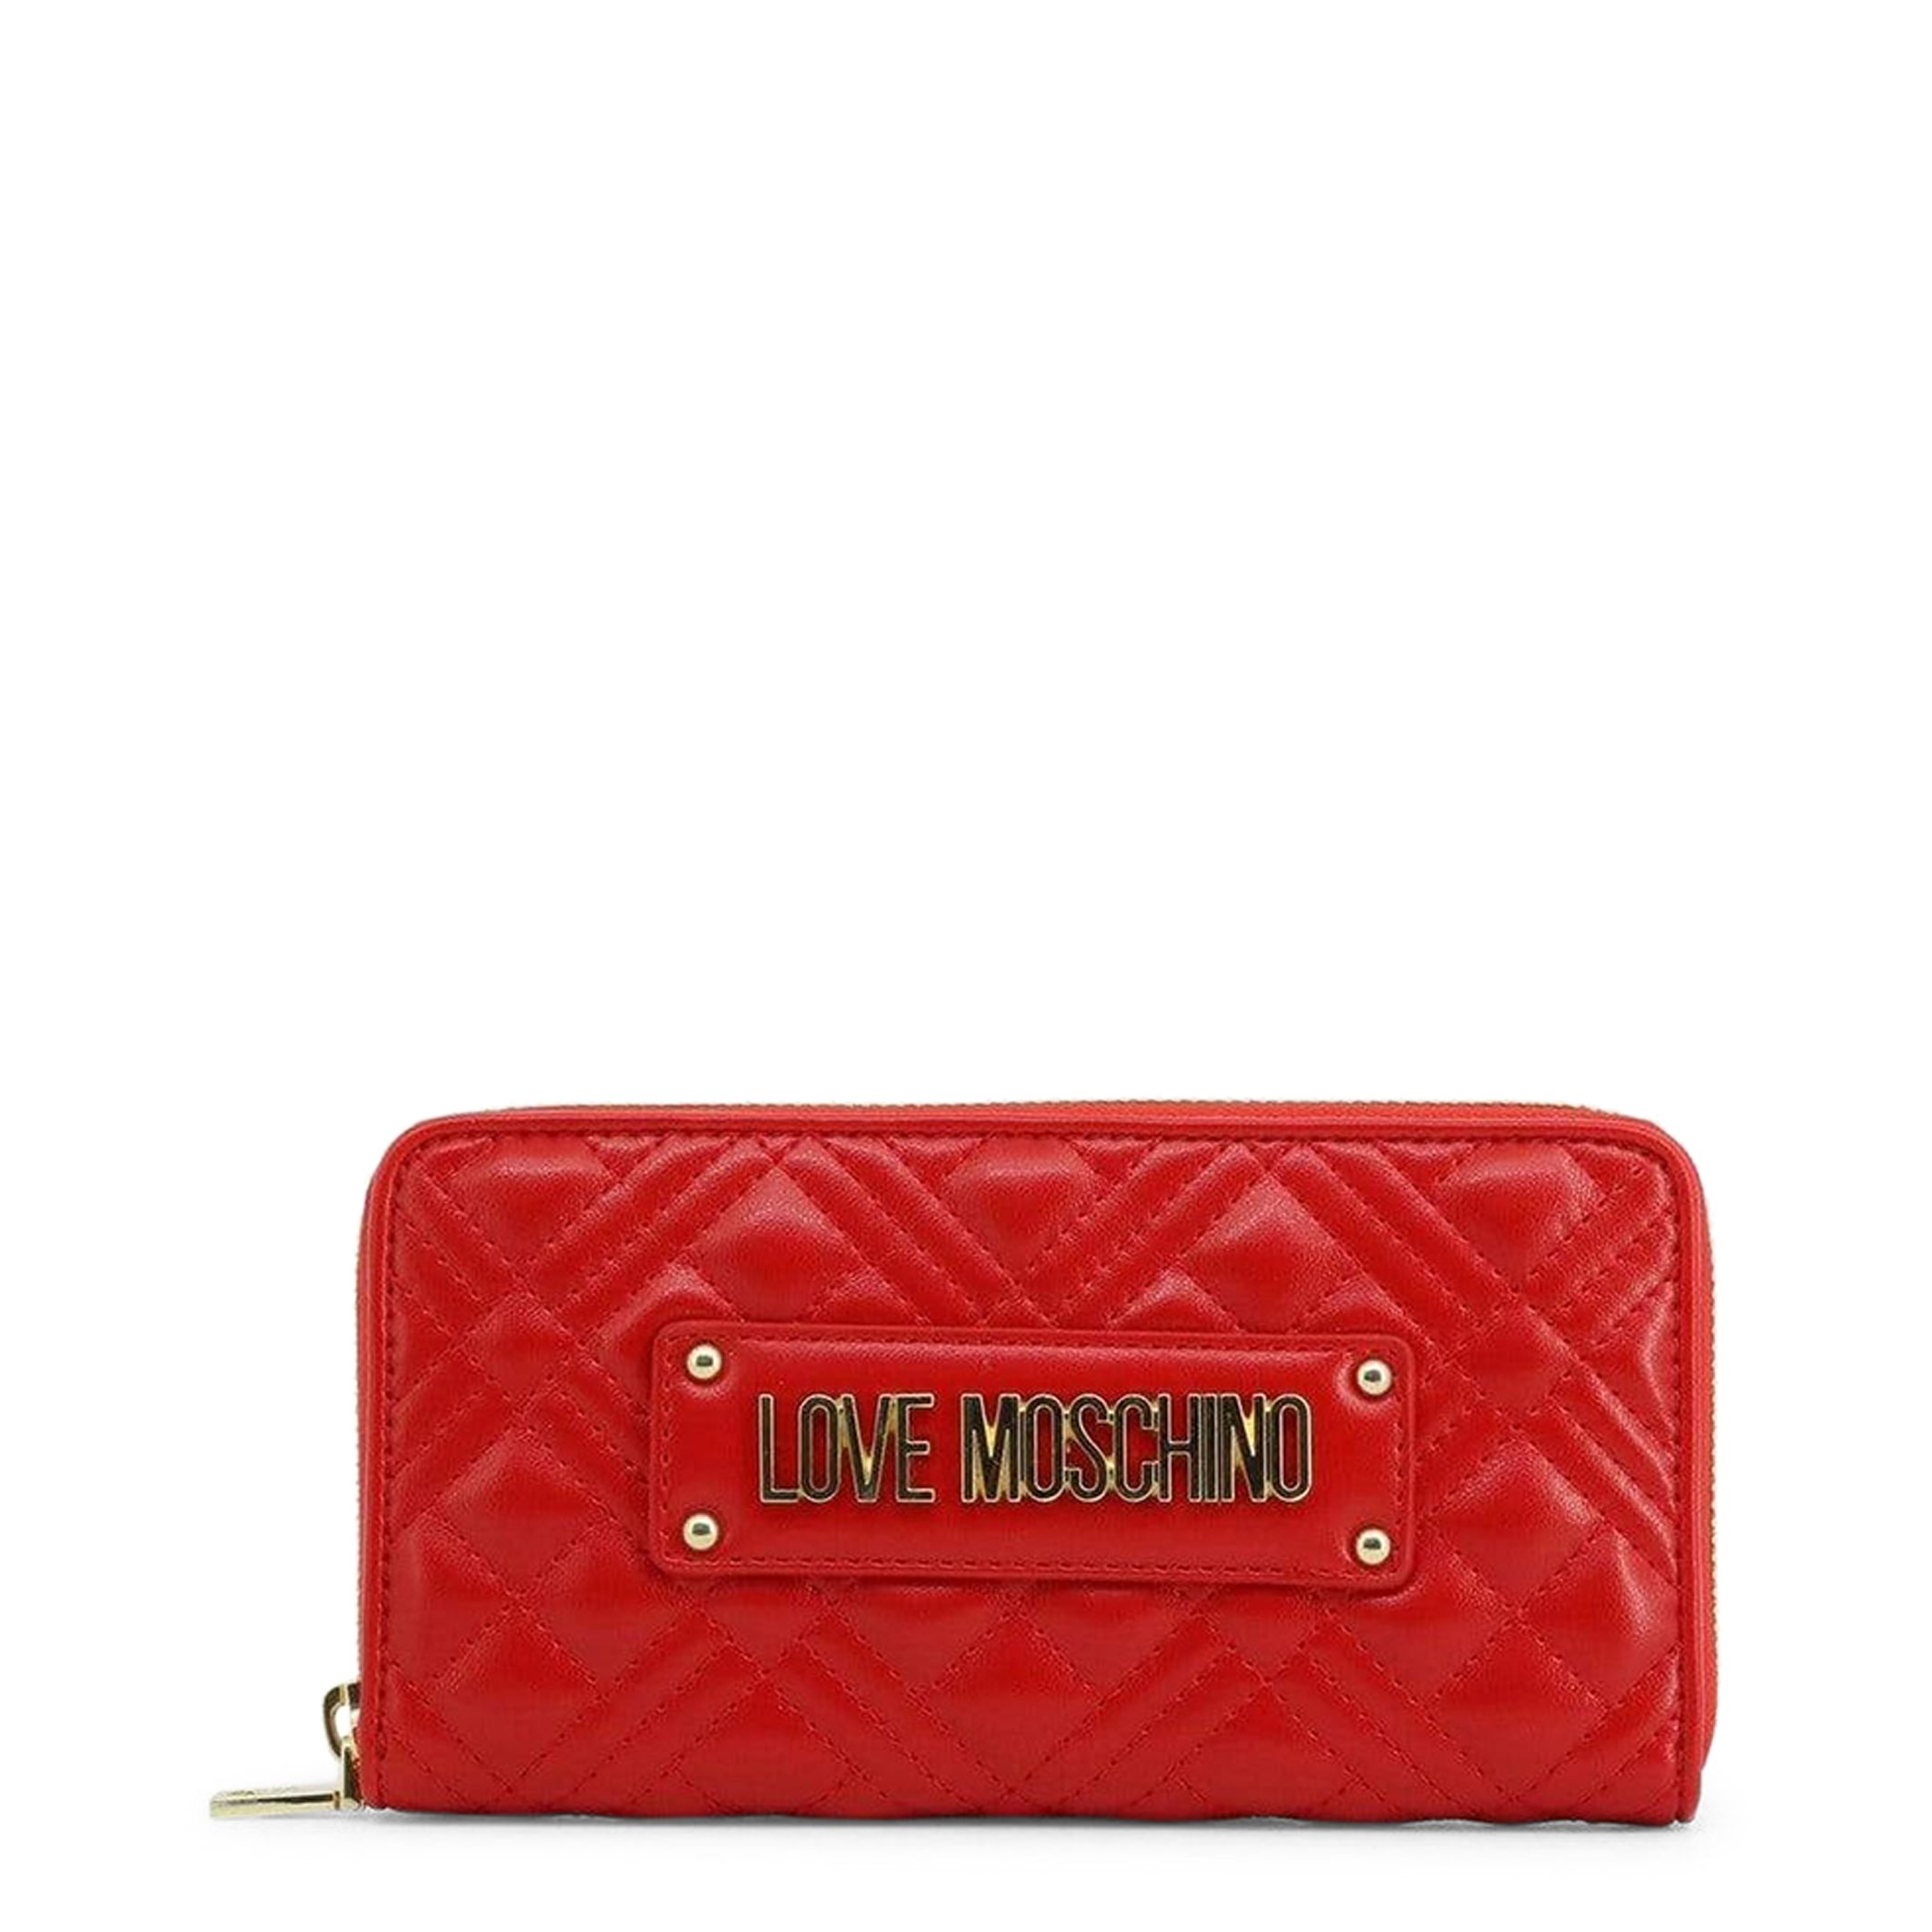 Love Moschino Women's Wallet Various Colours JC5600PP1DLA0 - red NOSIZE